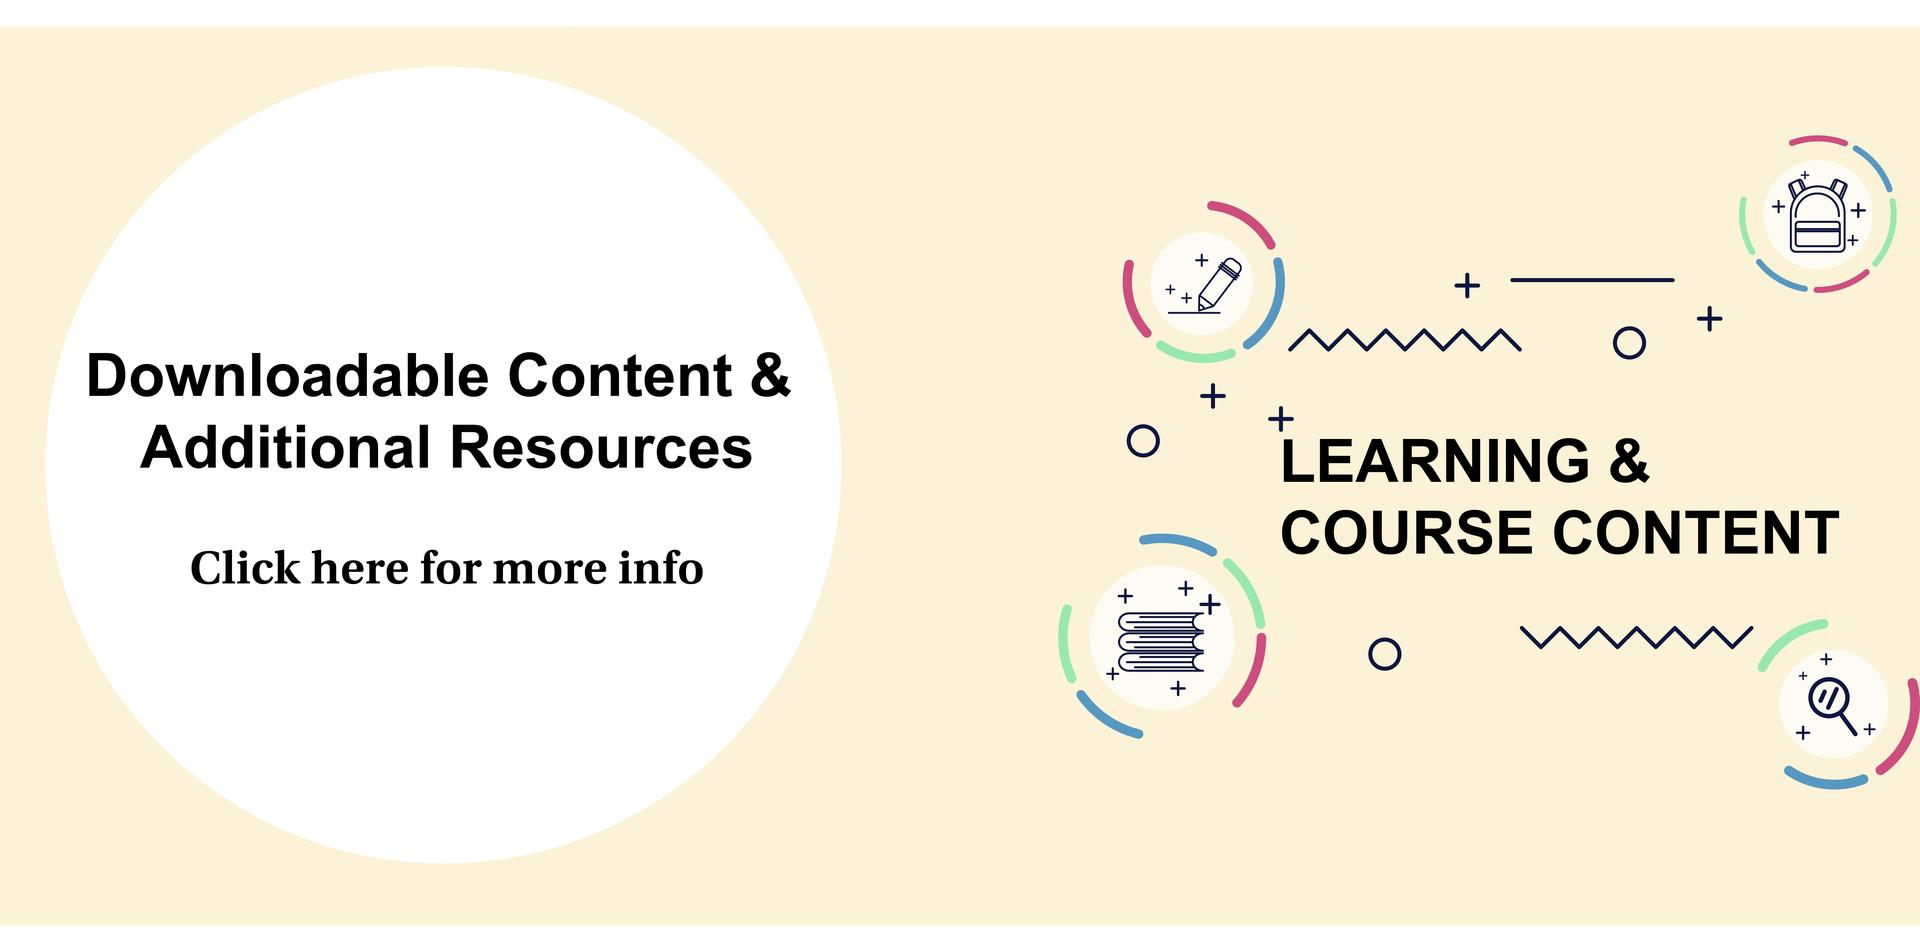 Learning and Course Content